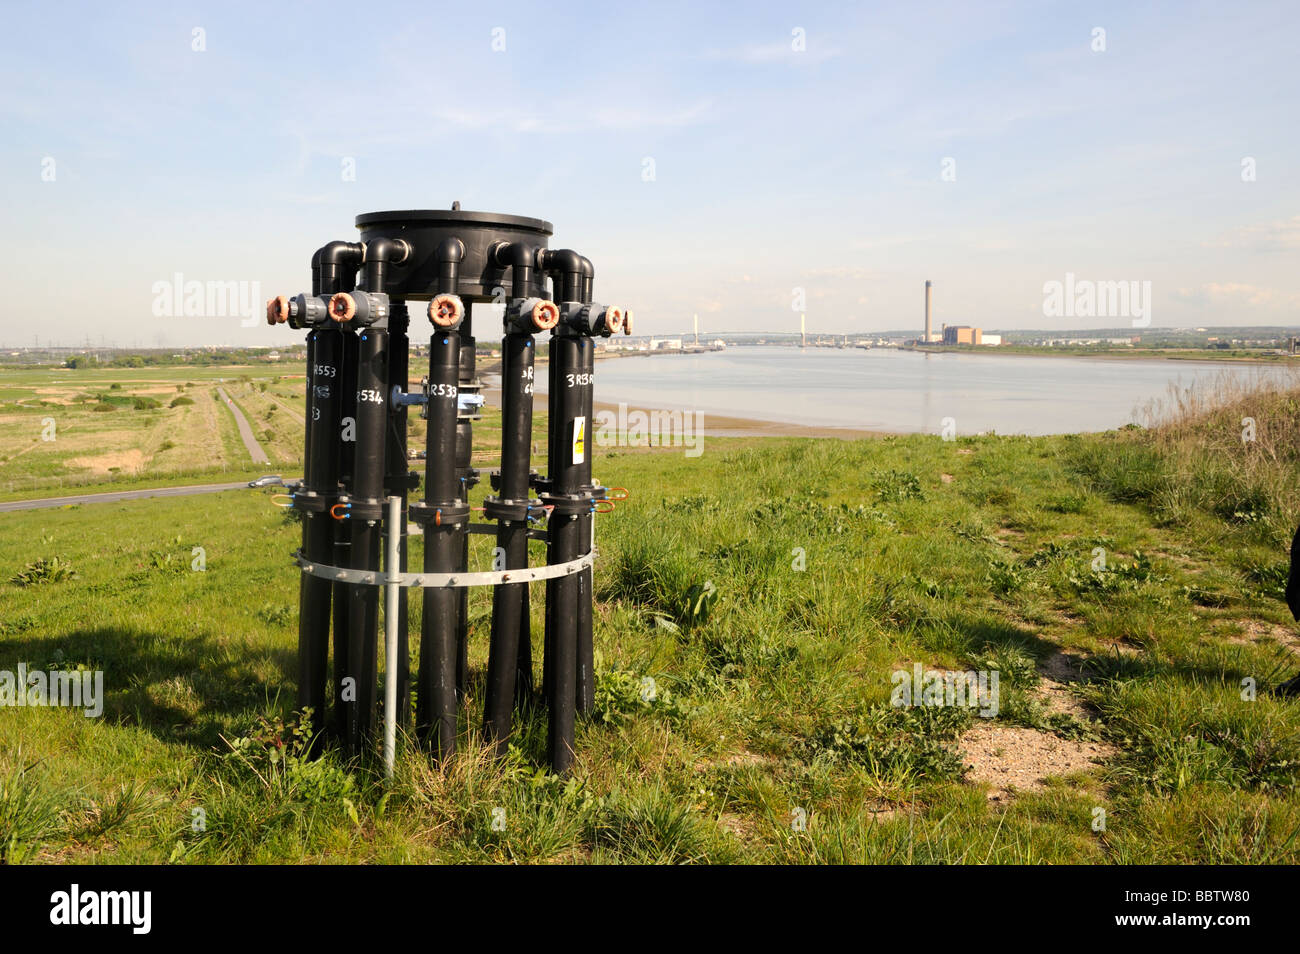 Rainham Essex,landfill site,pipes for siphoning methane gas to local power plant,view across Thames to Kent,UK - Stock Image